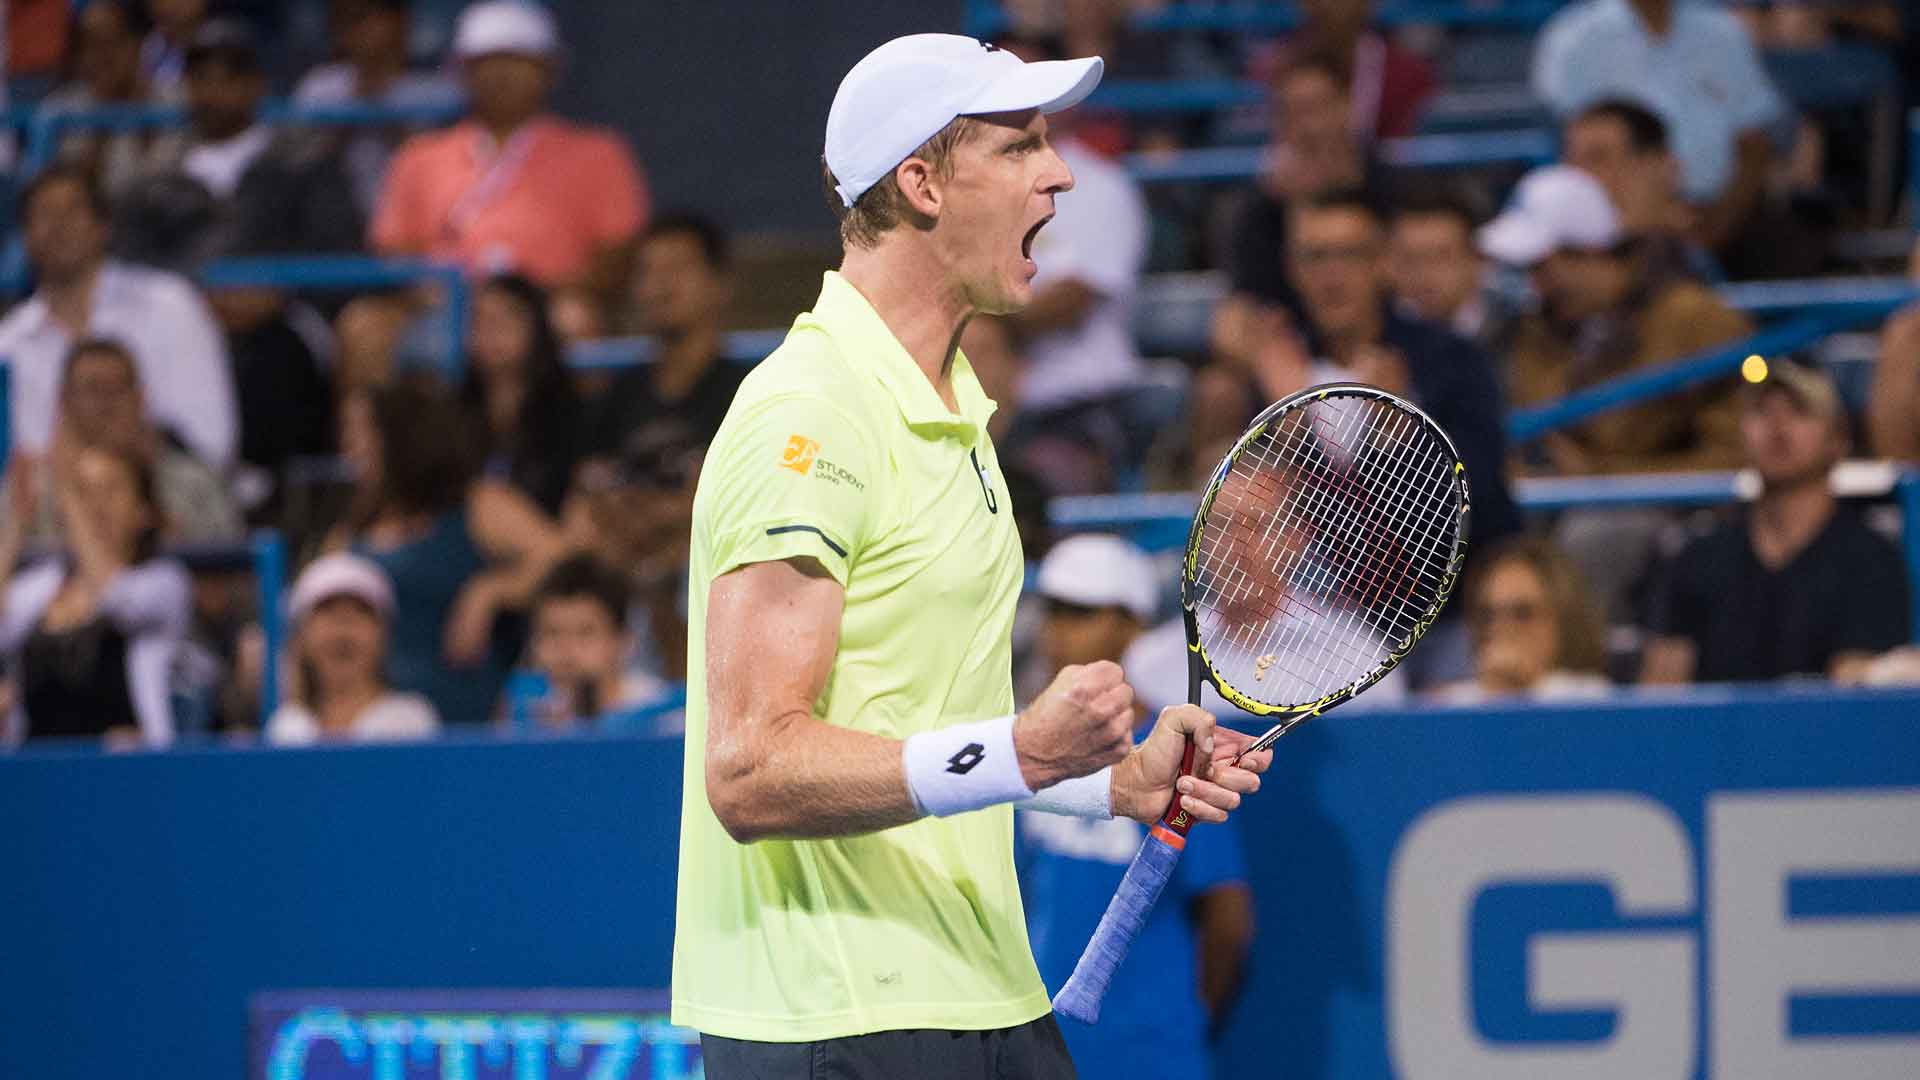 Watch Hot Shot as @KAndersonATP cleans the lines vs. #Thiem at @CitiOpen. https://t.co/c3Eu3W6Jjo #atp #tennis https://t.co/u6vyYUl74u